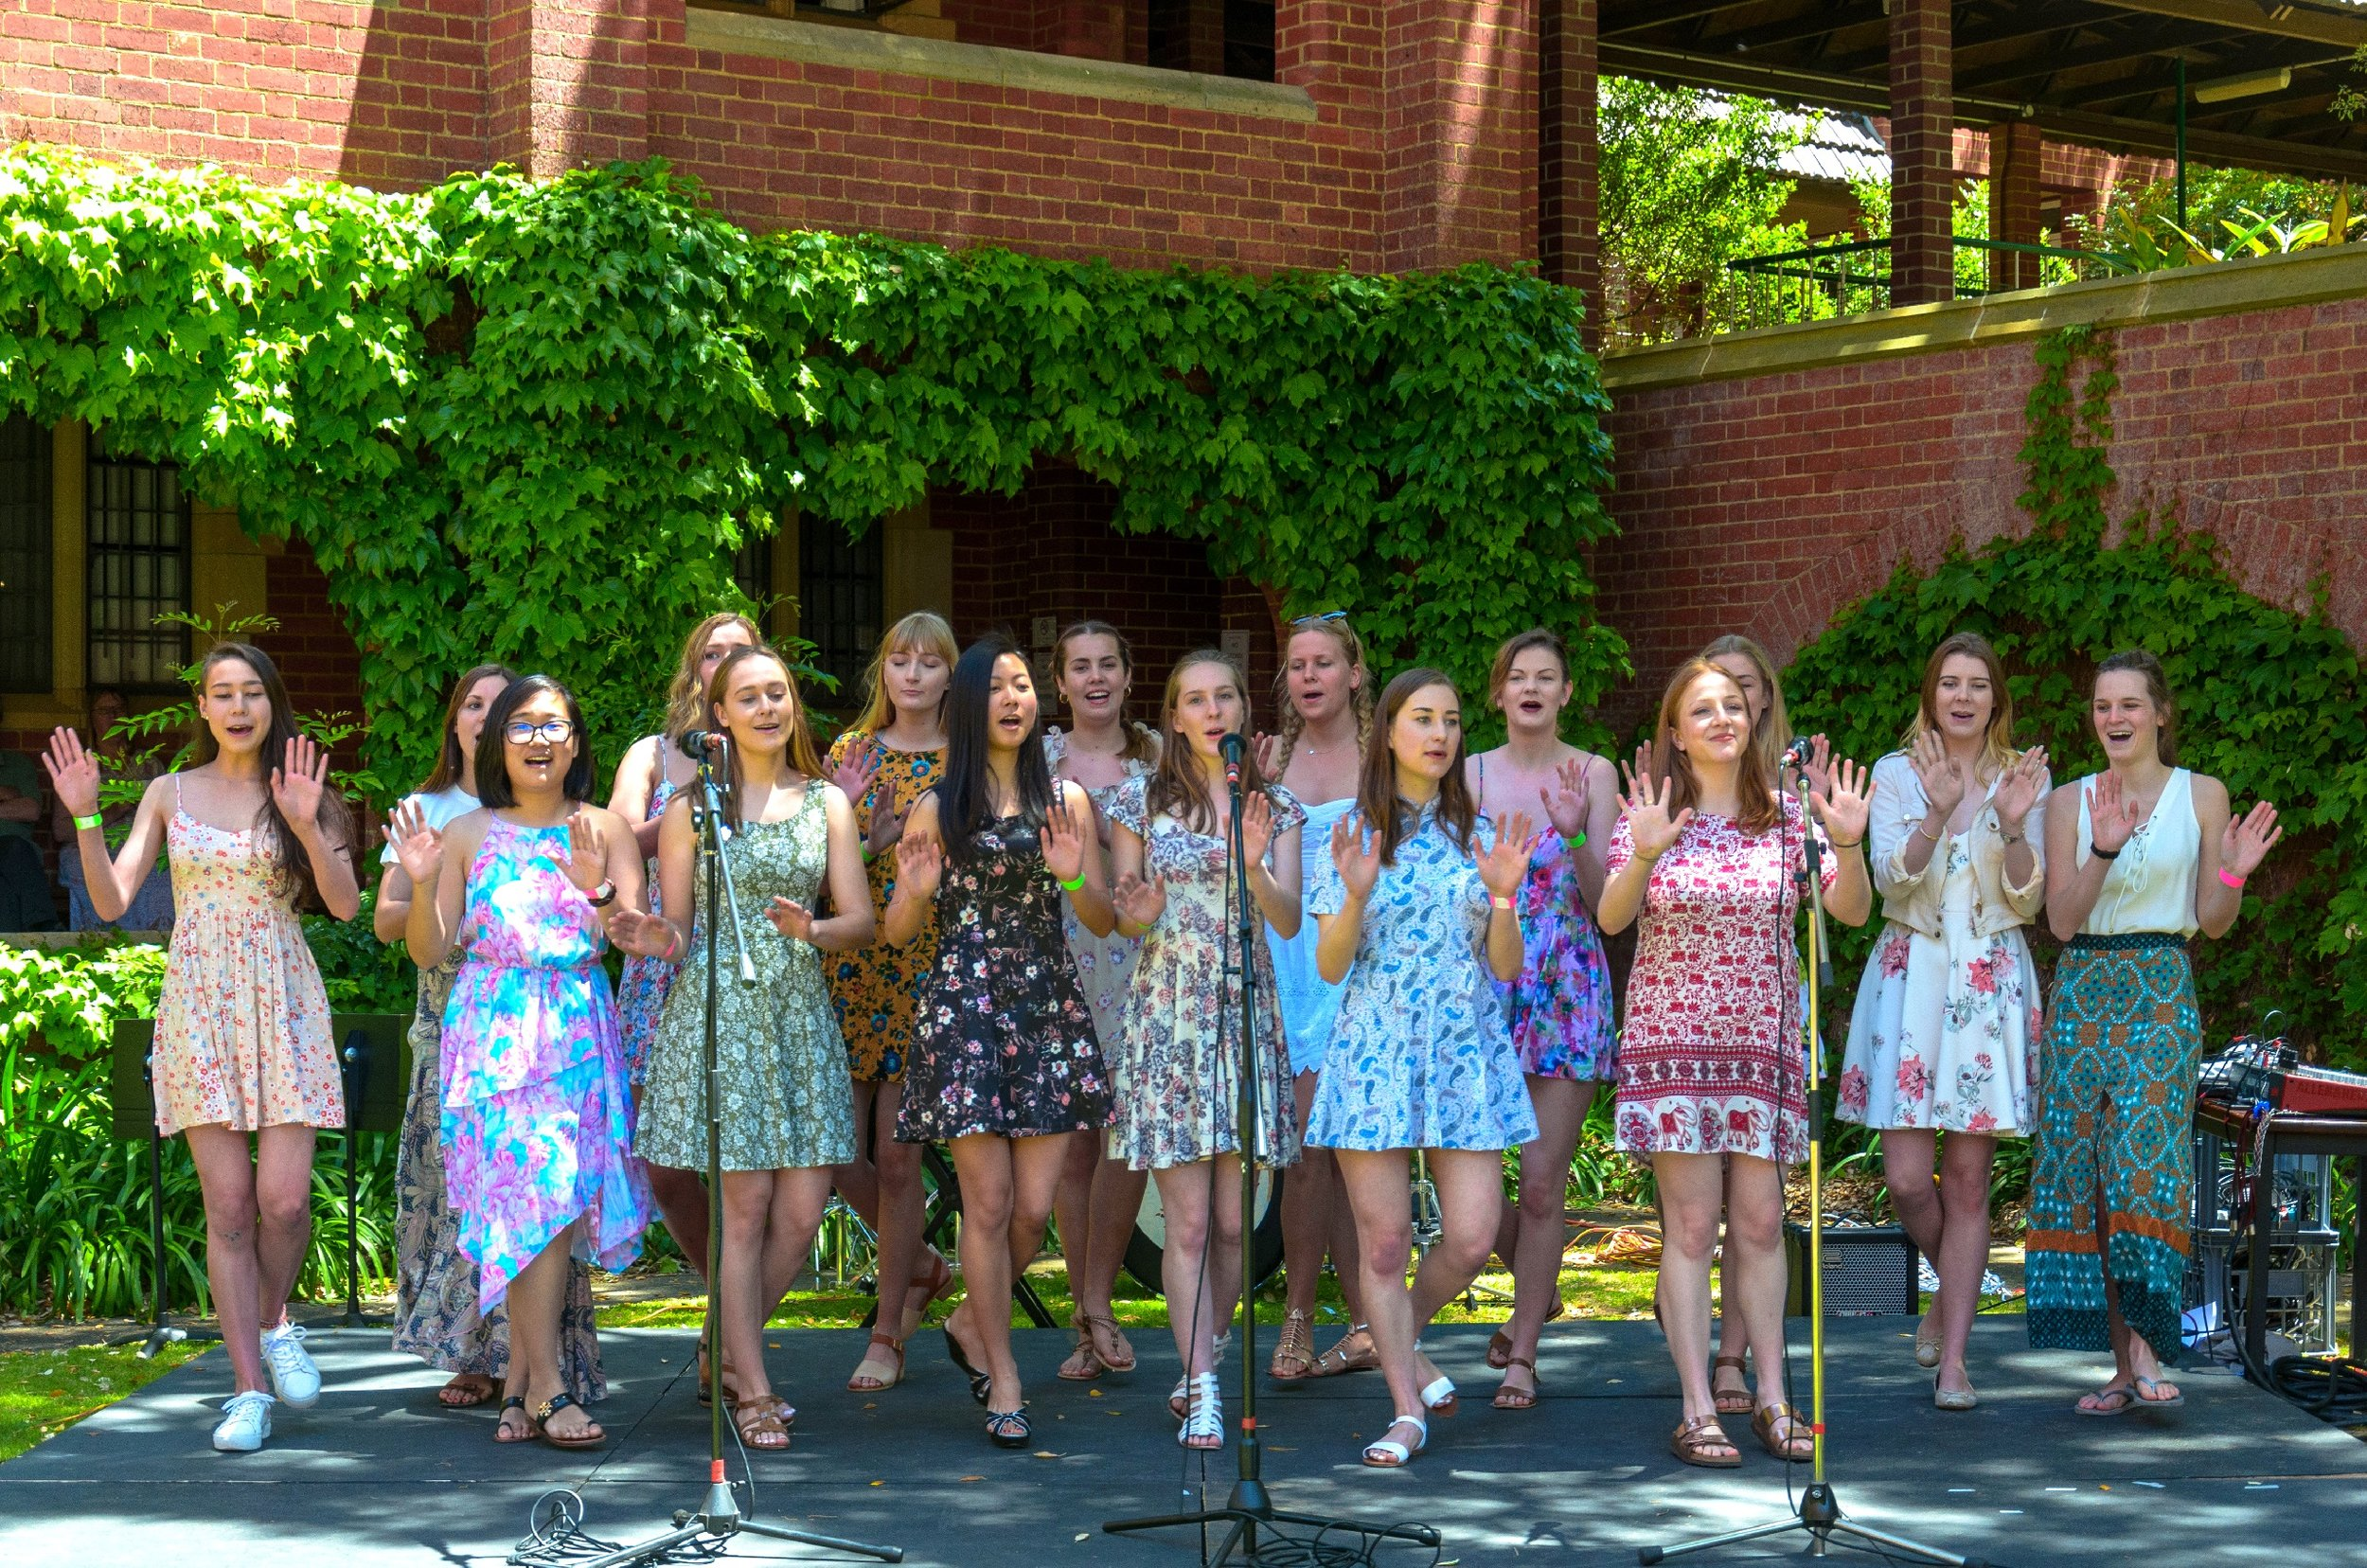 30/10/2016: The Spring Fair   The College's female acapella group, the  Mockingbirds , performs at the annual St George's Spring Fair.